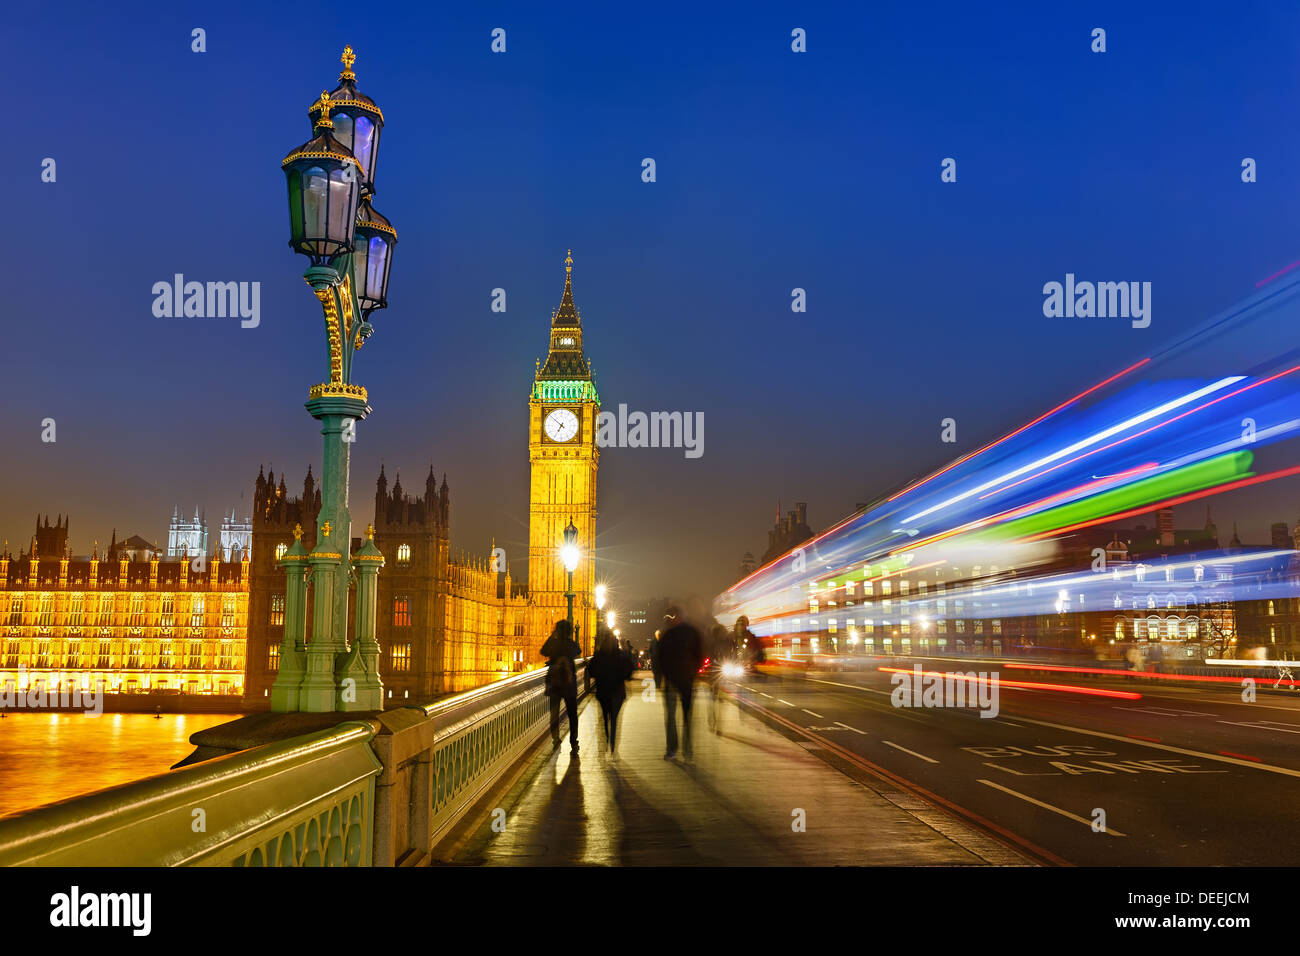 London at night - Stock Image